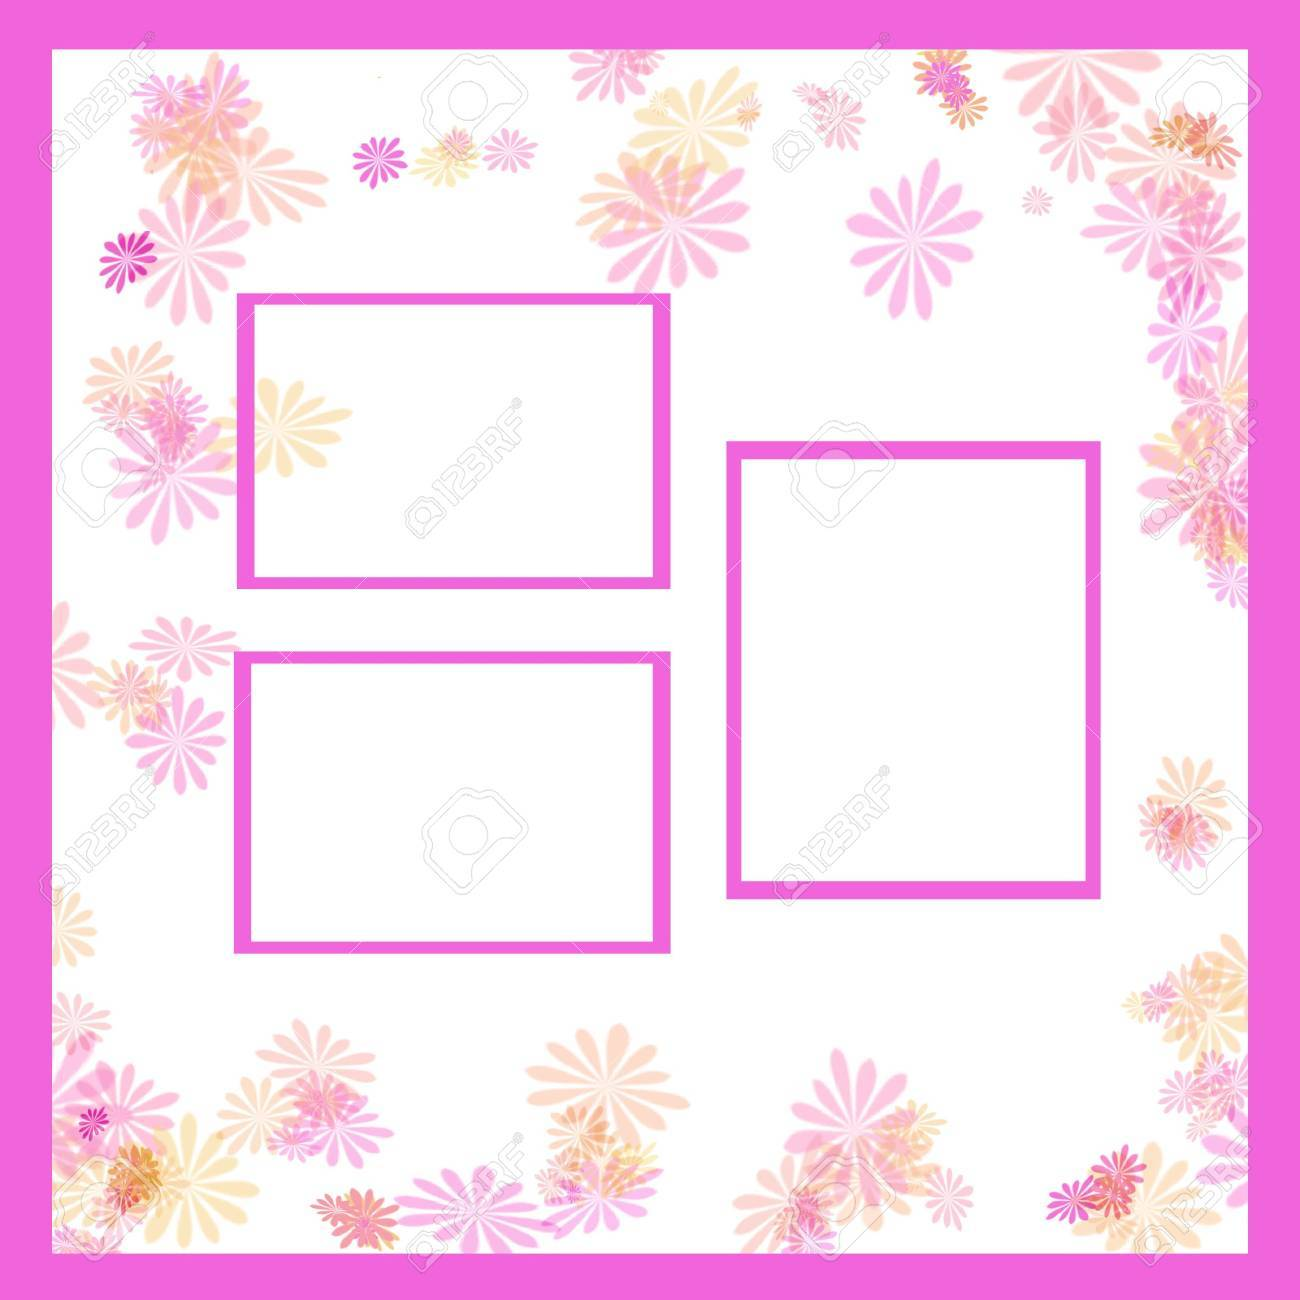 Spring Pastel Flowers And Vines Frame Around Photo Cutouts Stock ...